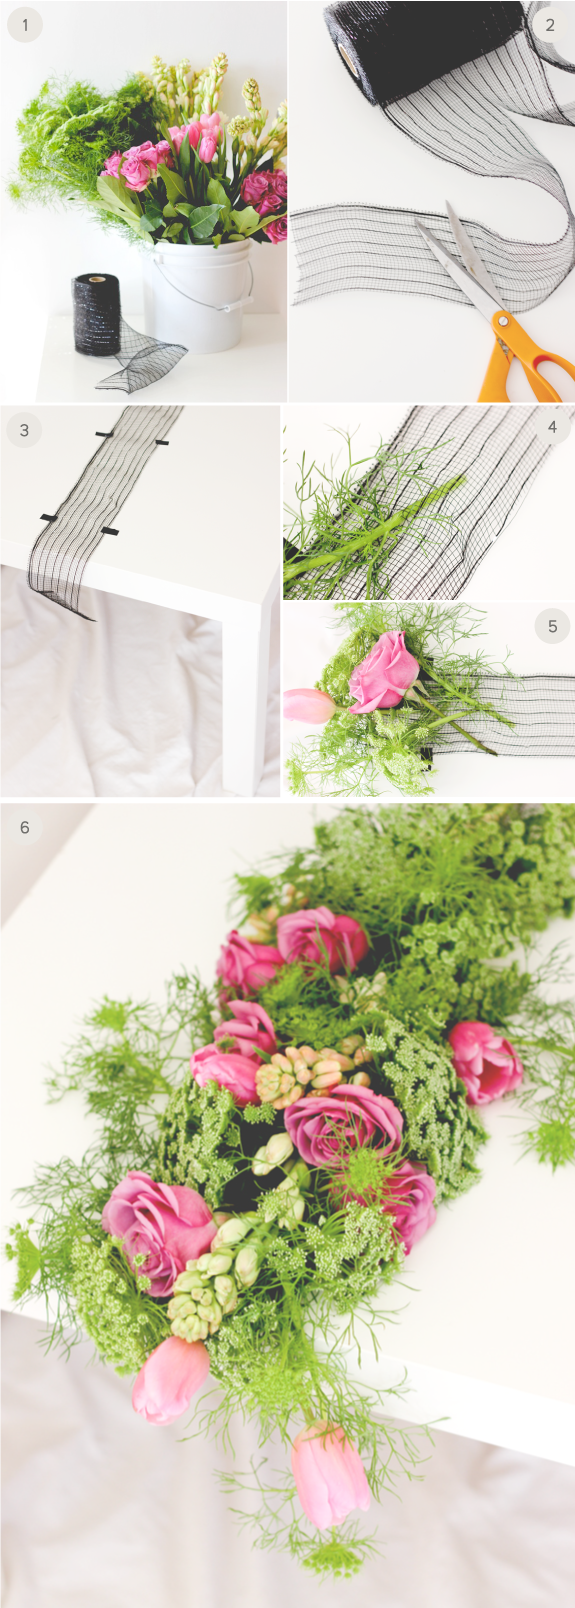 Diy wedding fresh floral table runner pink wedding pinterest diy wedding fresh floral table runner step by step instructions on mintedjulep solutioingenieria Gallery